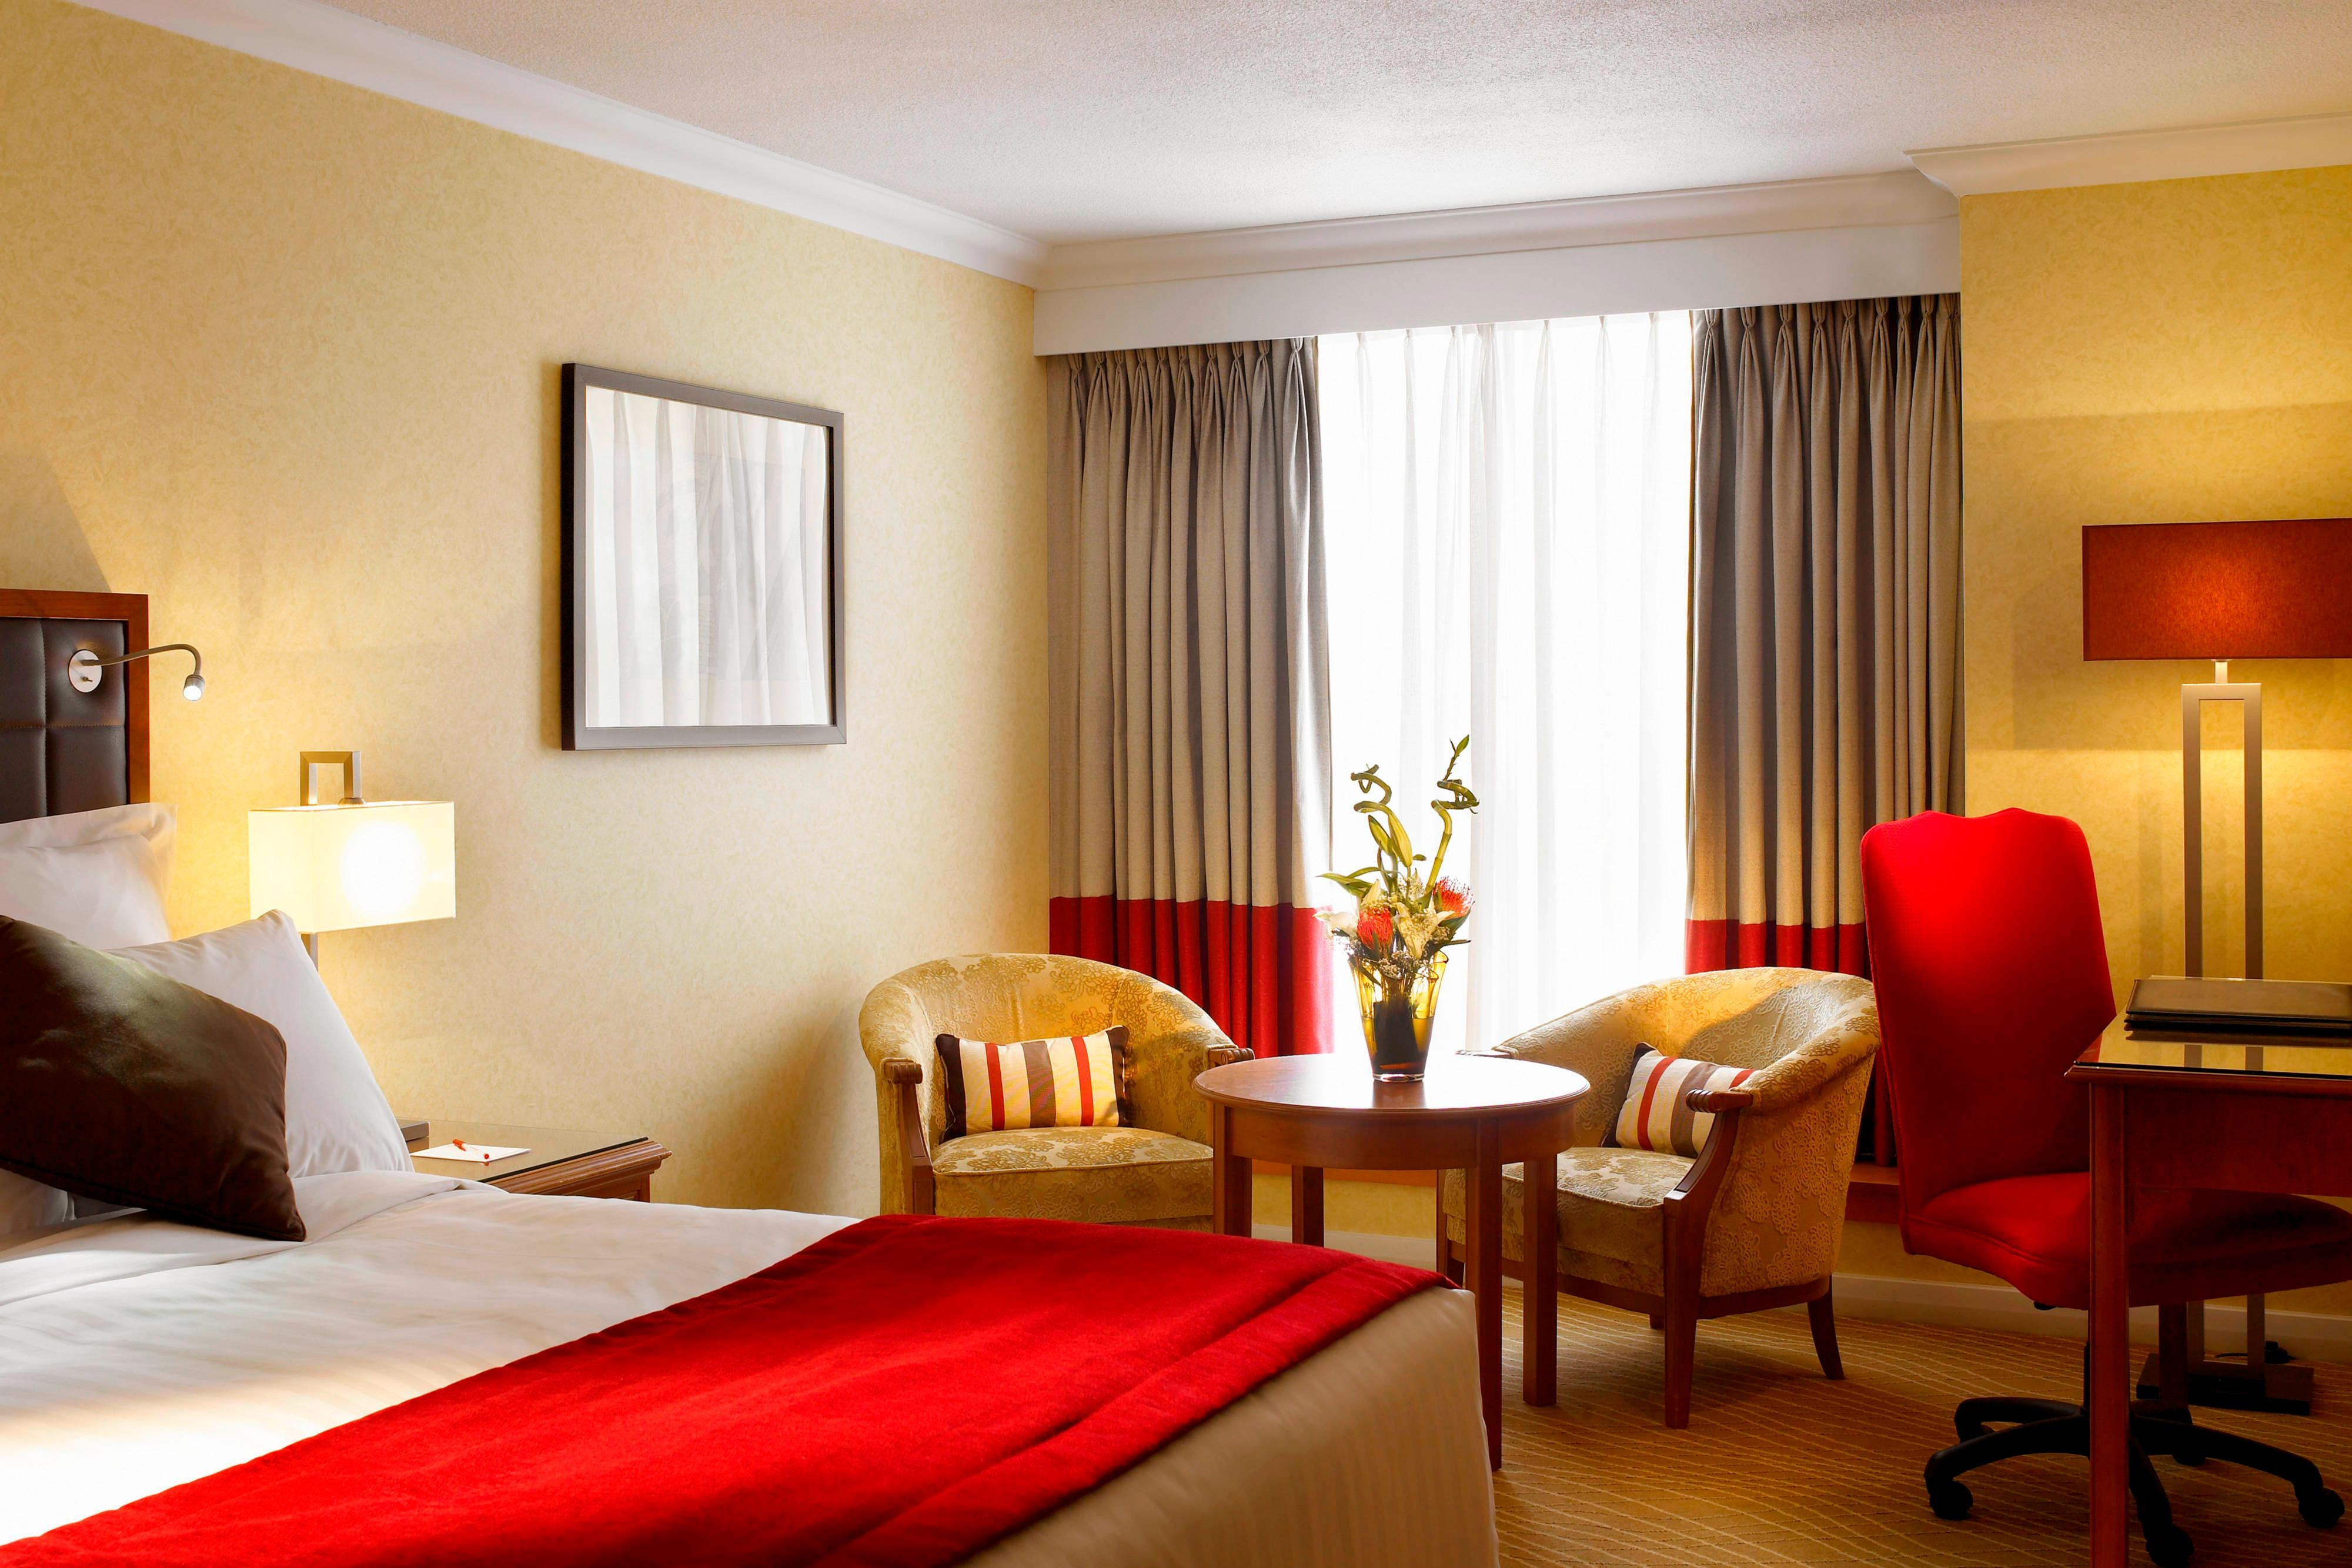 Suite del Heathrow/Windsor Marriott Hotel